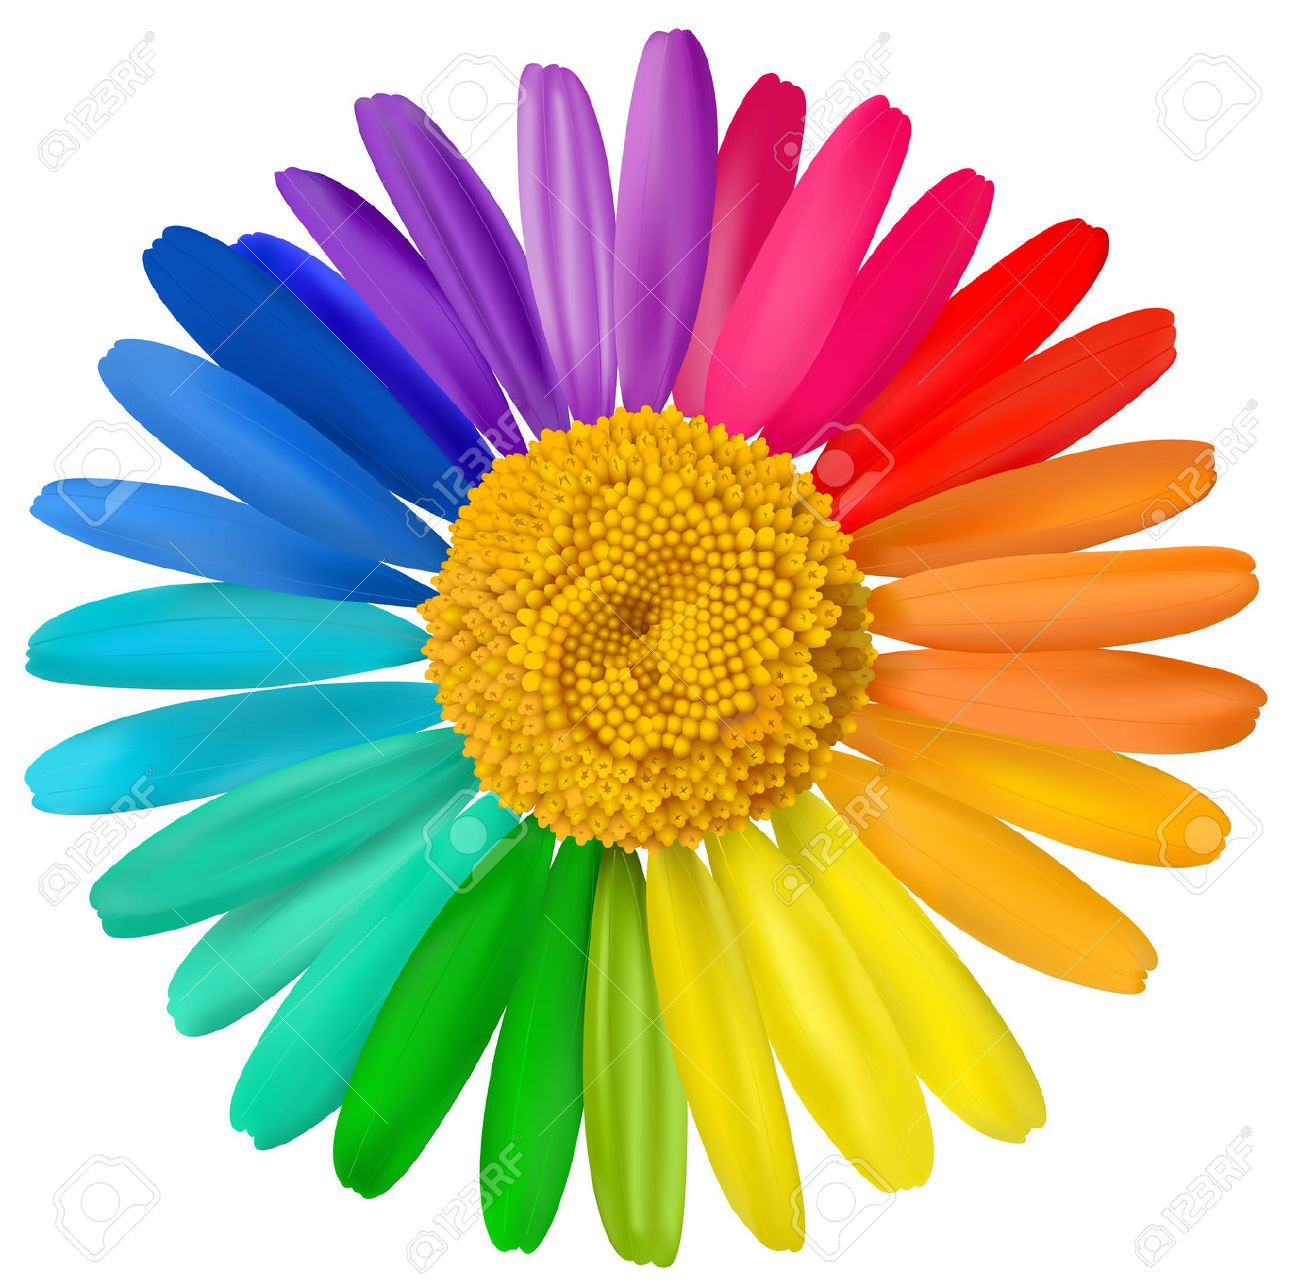 bright color flowers - Google Search